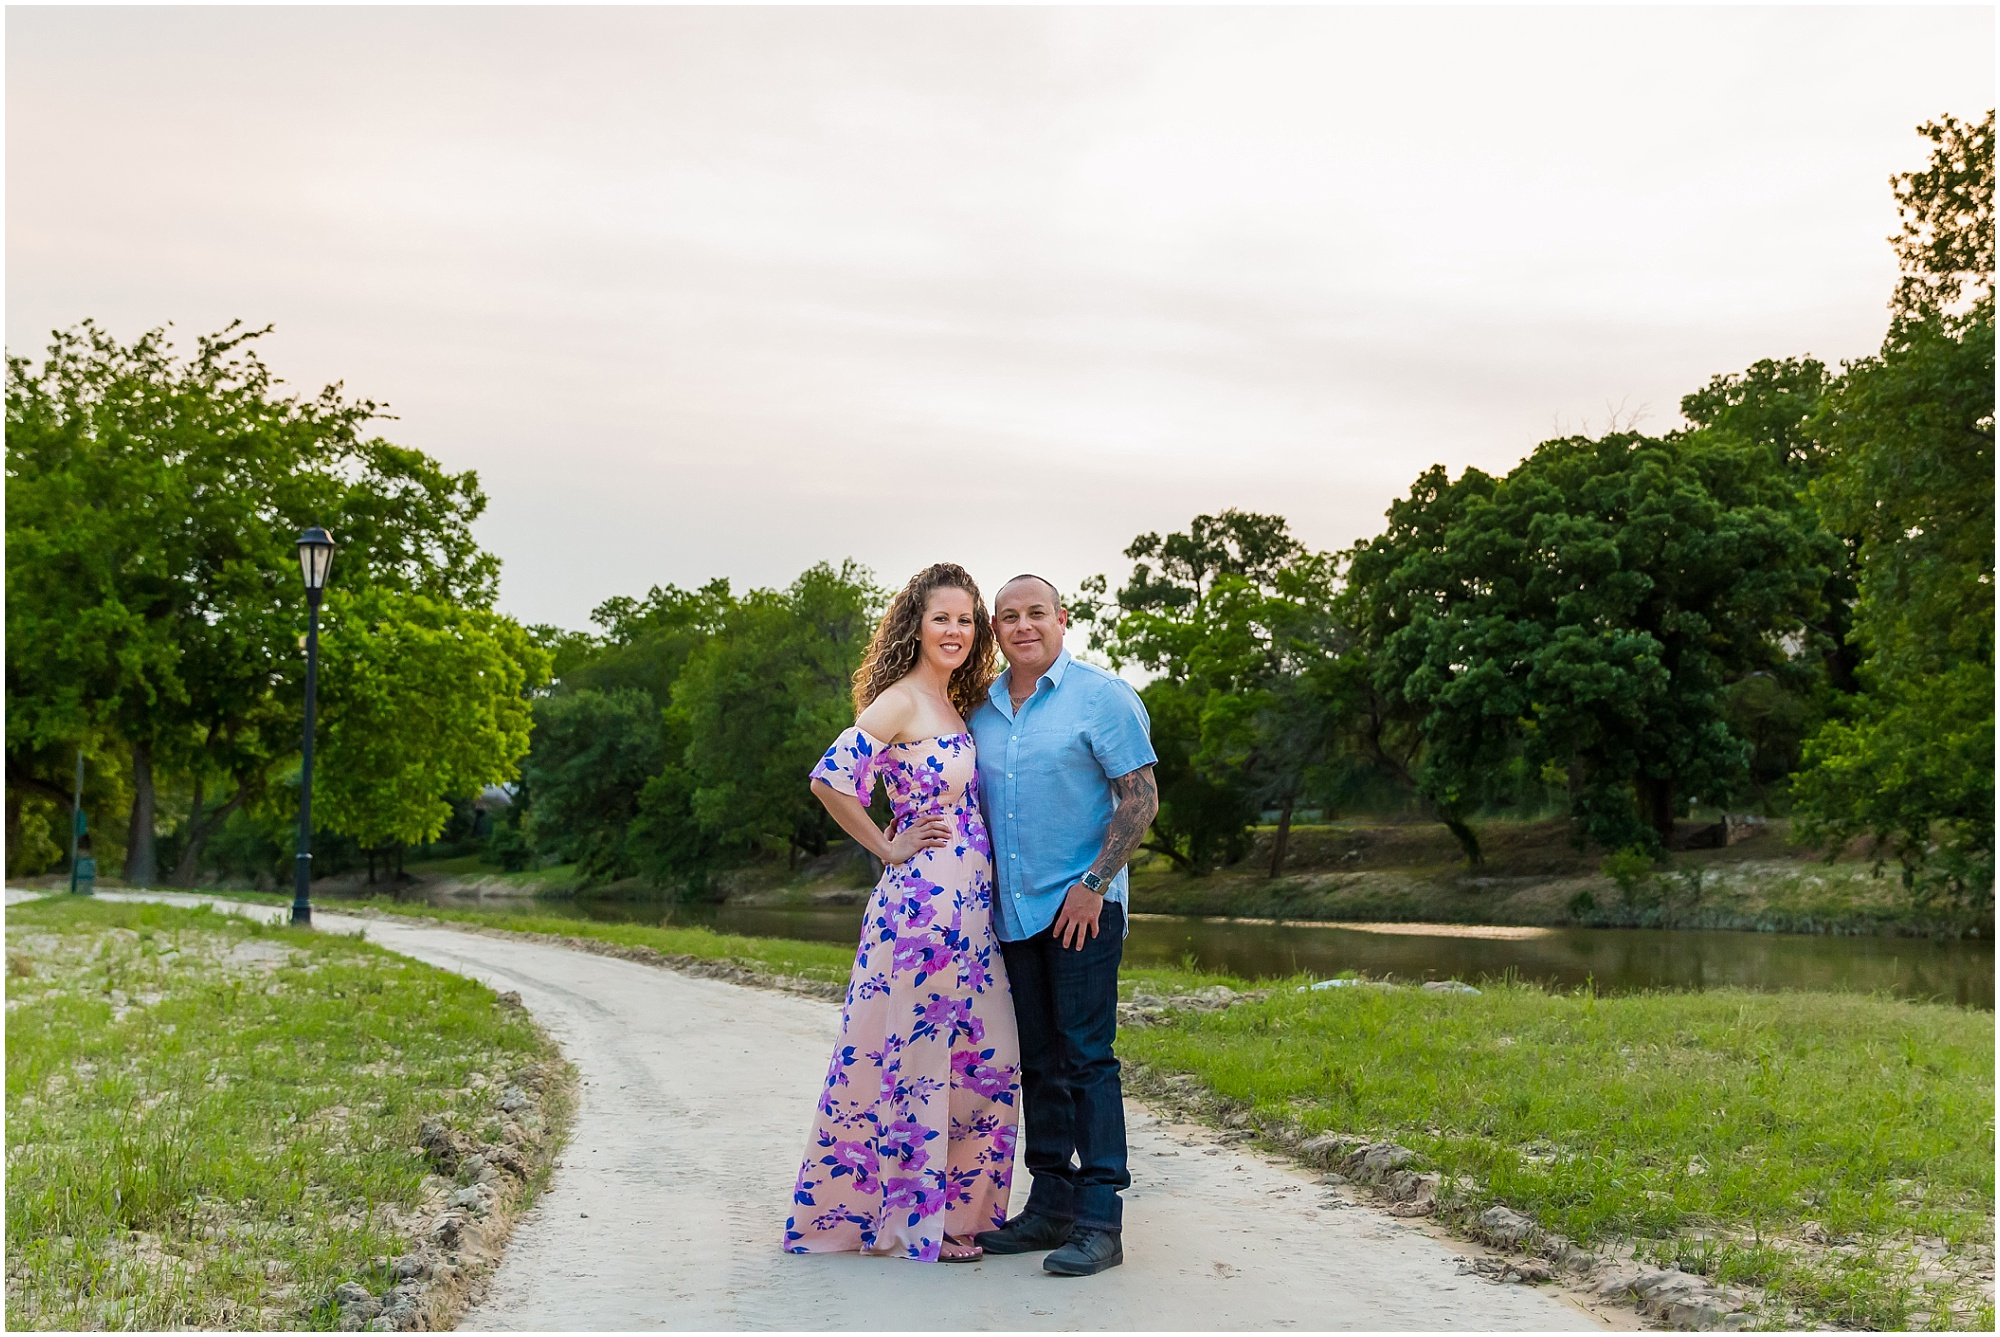 A couple smiles at the camera while standing near a river with a pink sunset sky behind them during their engagement photo session - Jason & Melaina Photography - www.jasonandmelaina.com